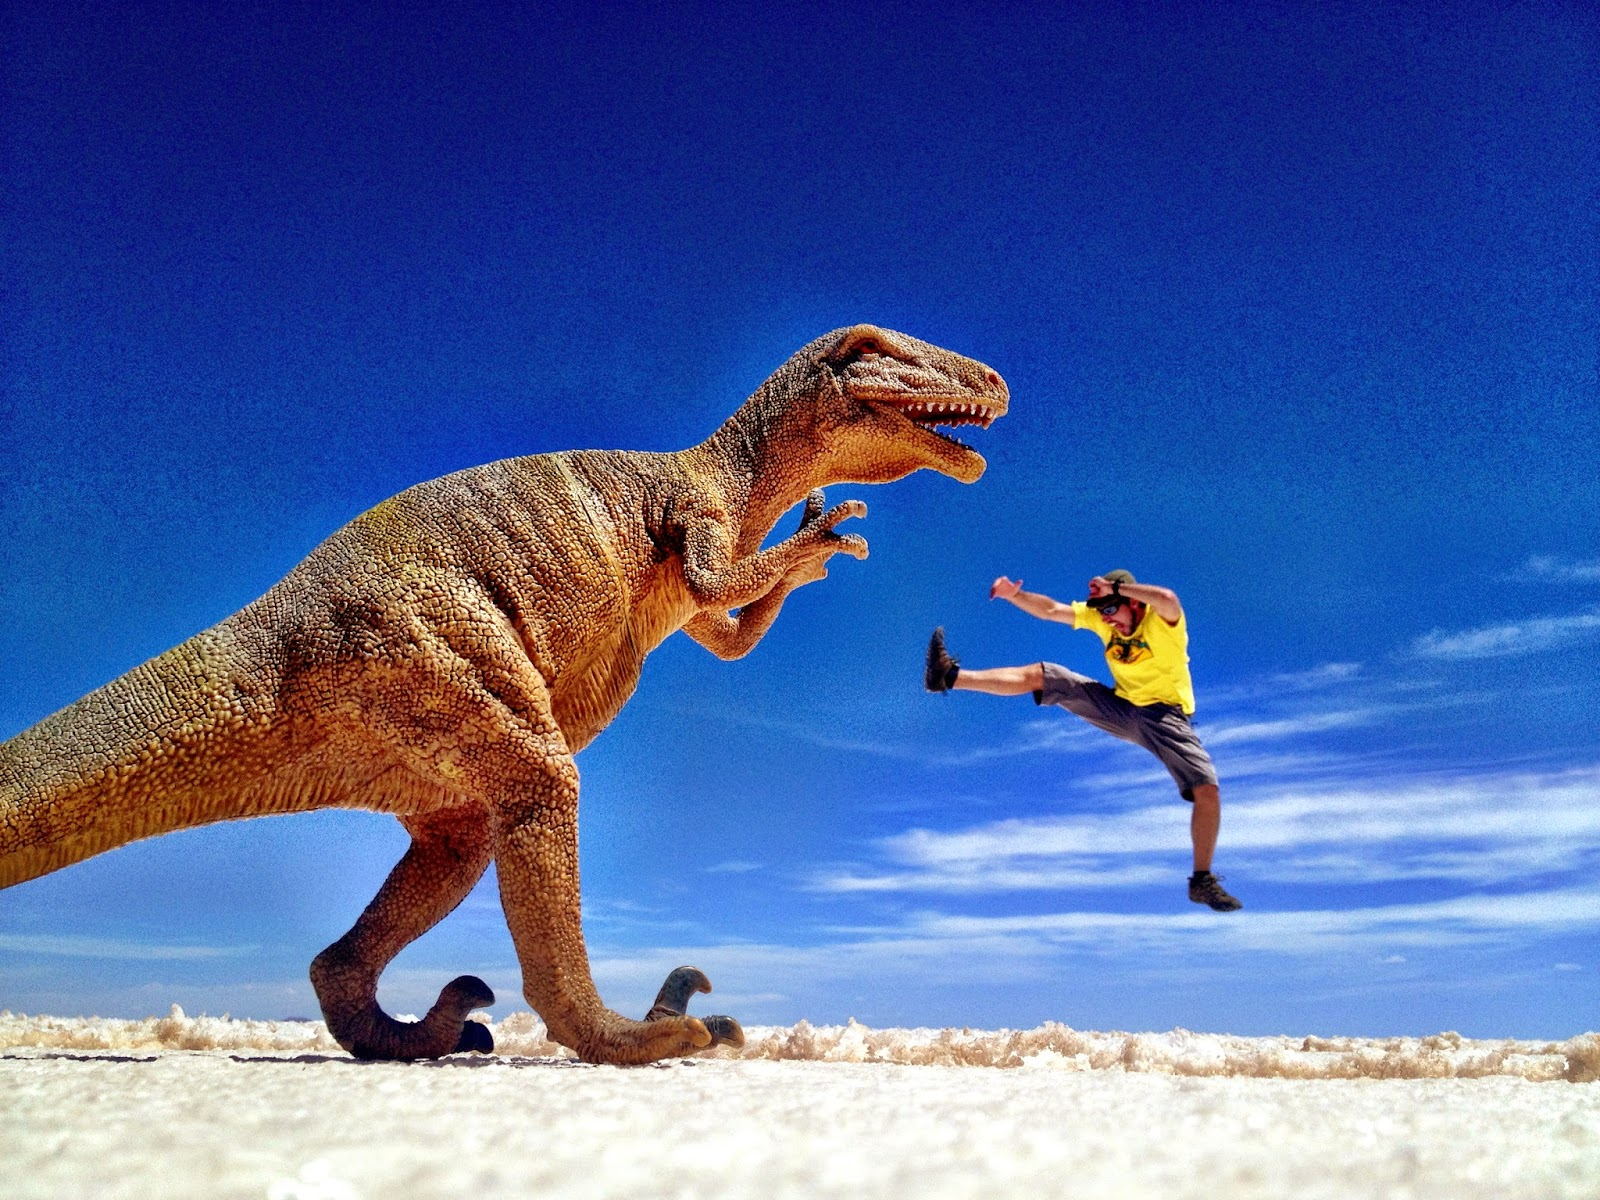 Simon Heyes - kicking dinosaur ass in the Salar de Uyuni